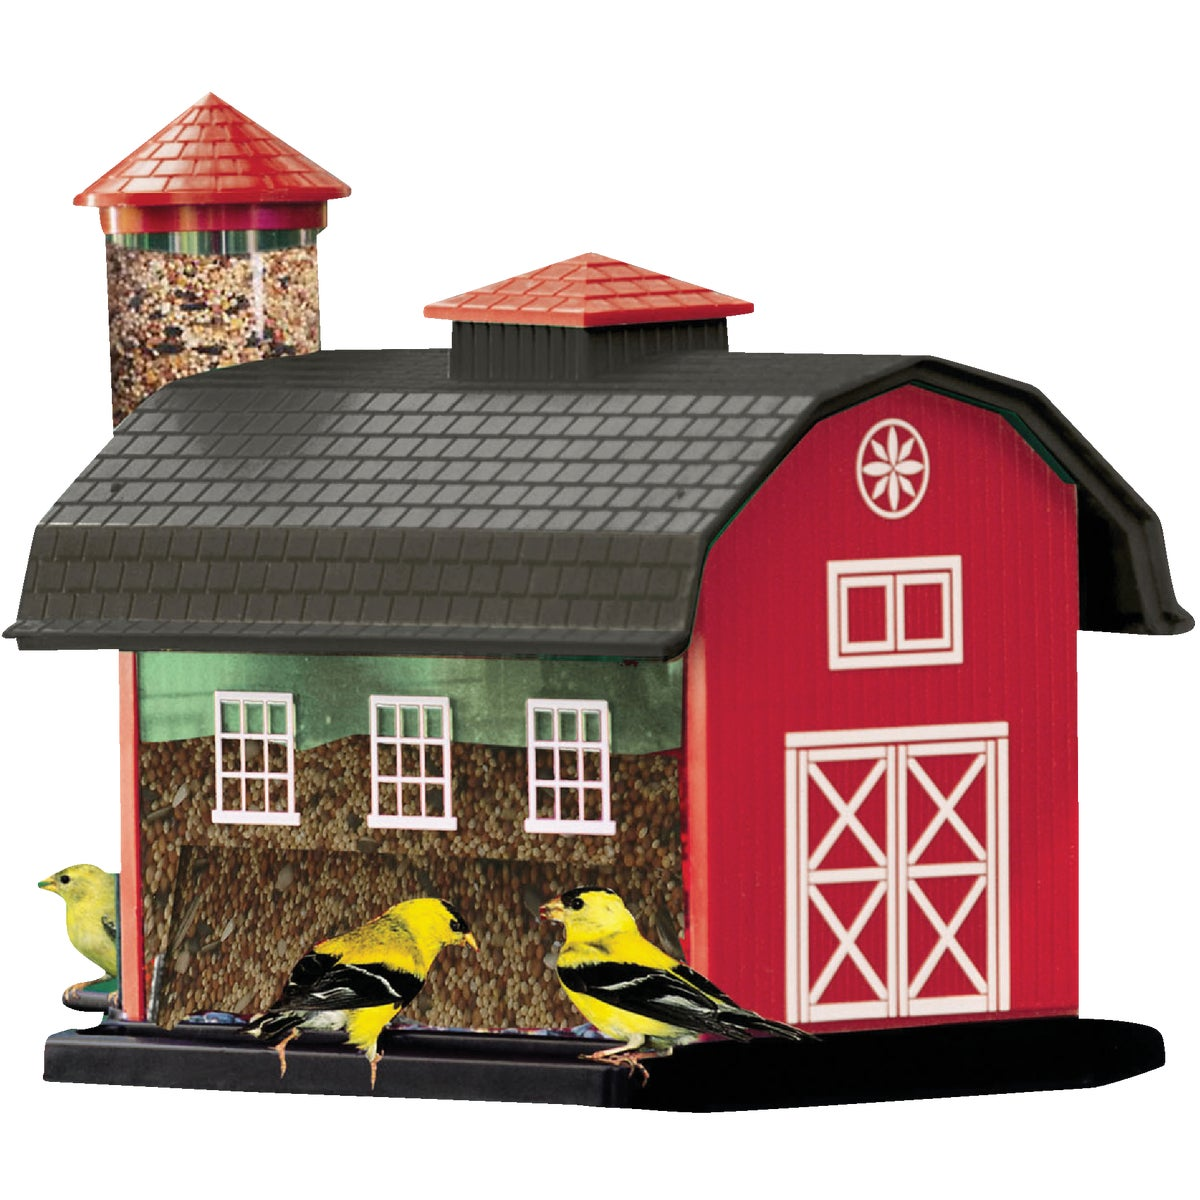 Kay Home Products RED BARN FEEDER 6290